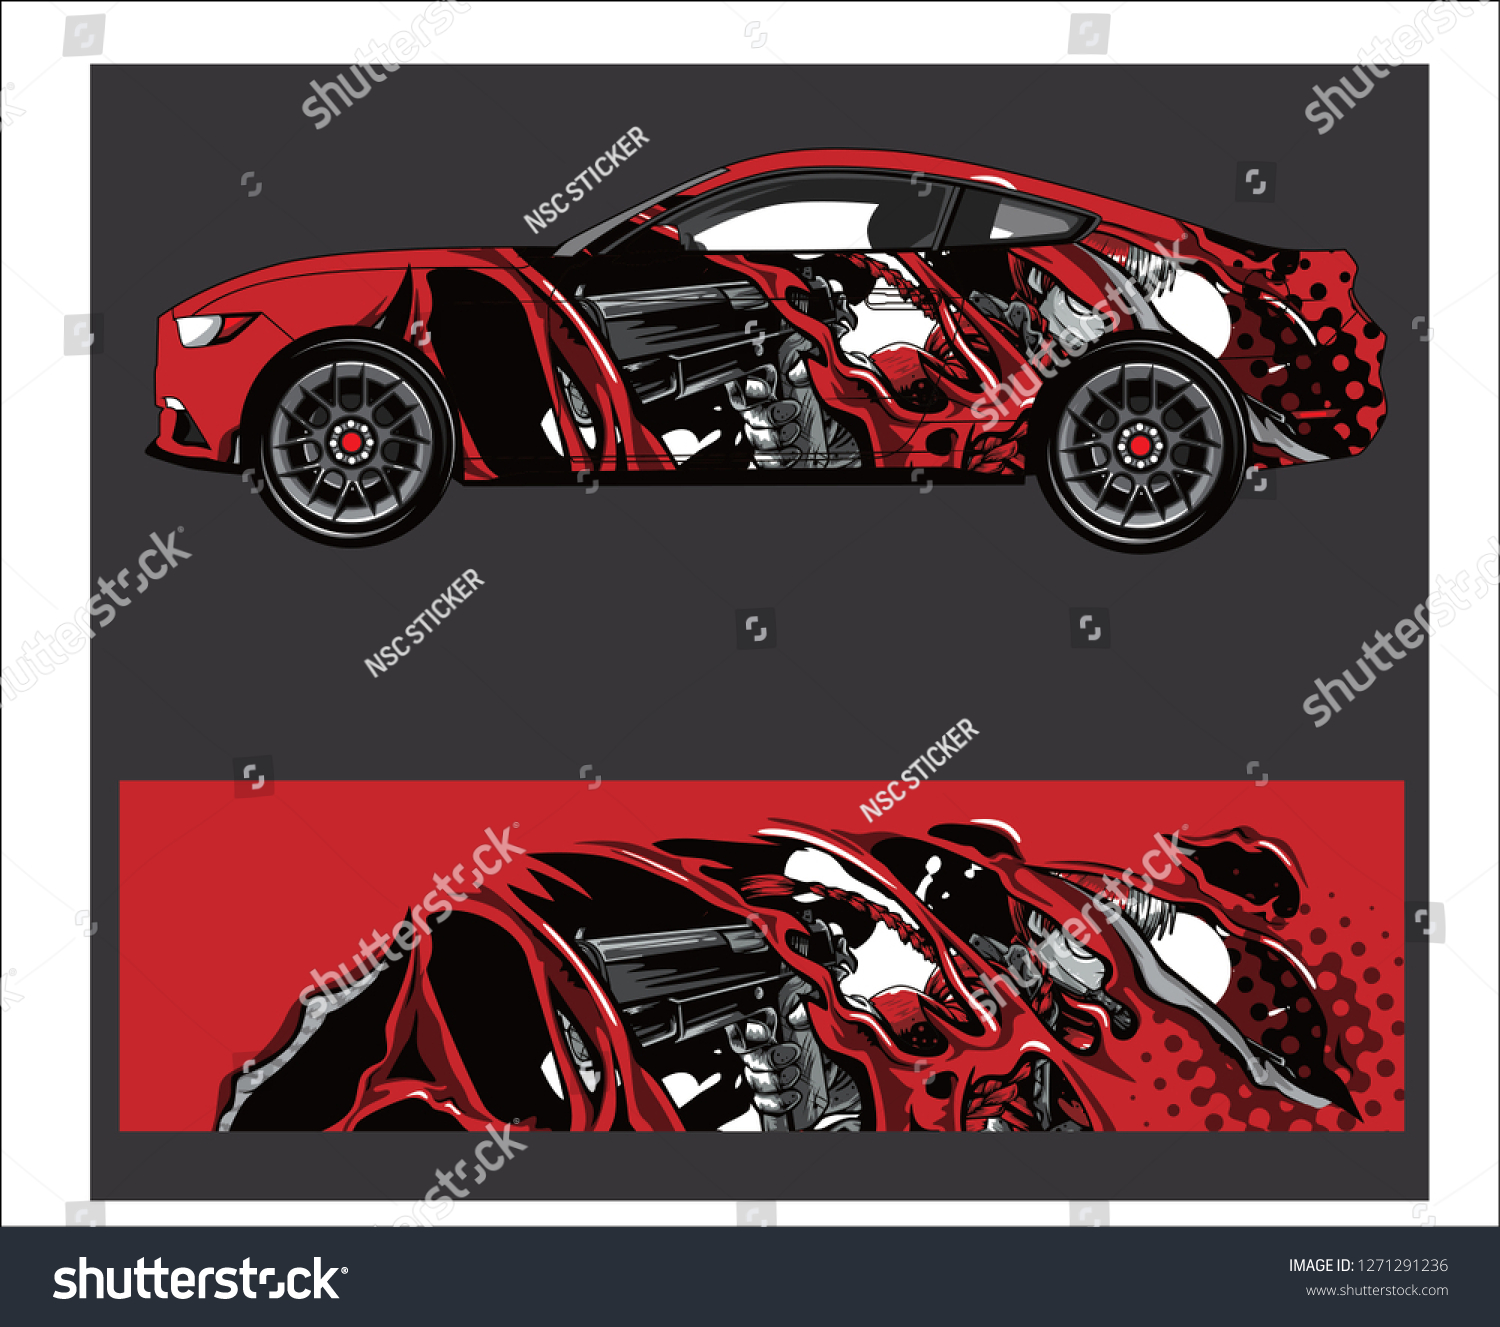 Car vehicle anime graphic kit background stock vector